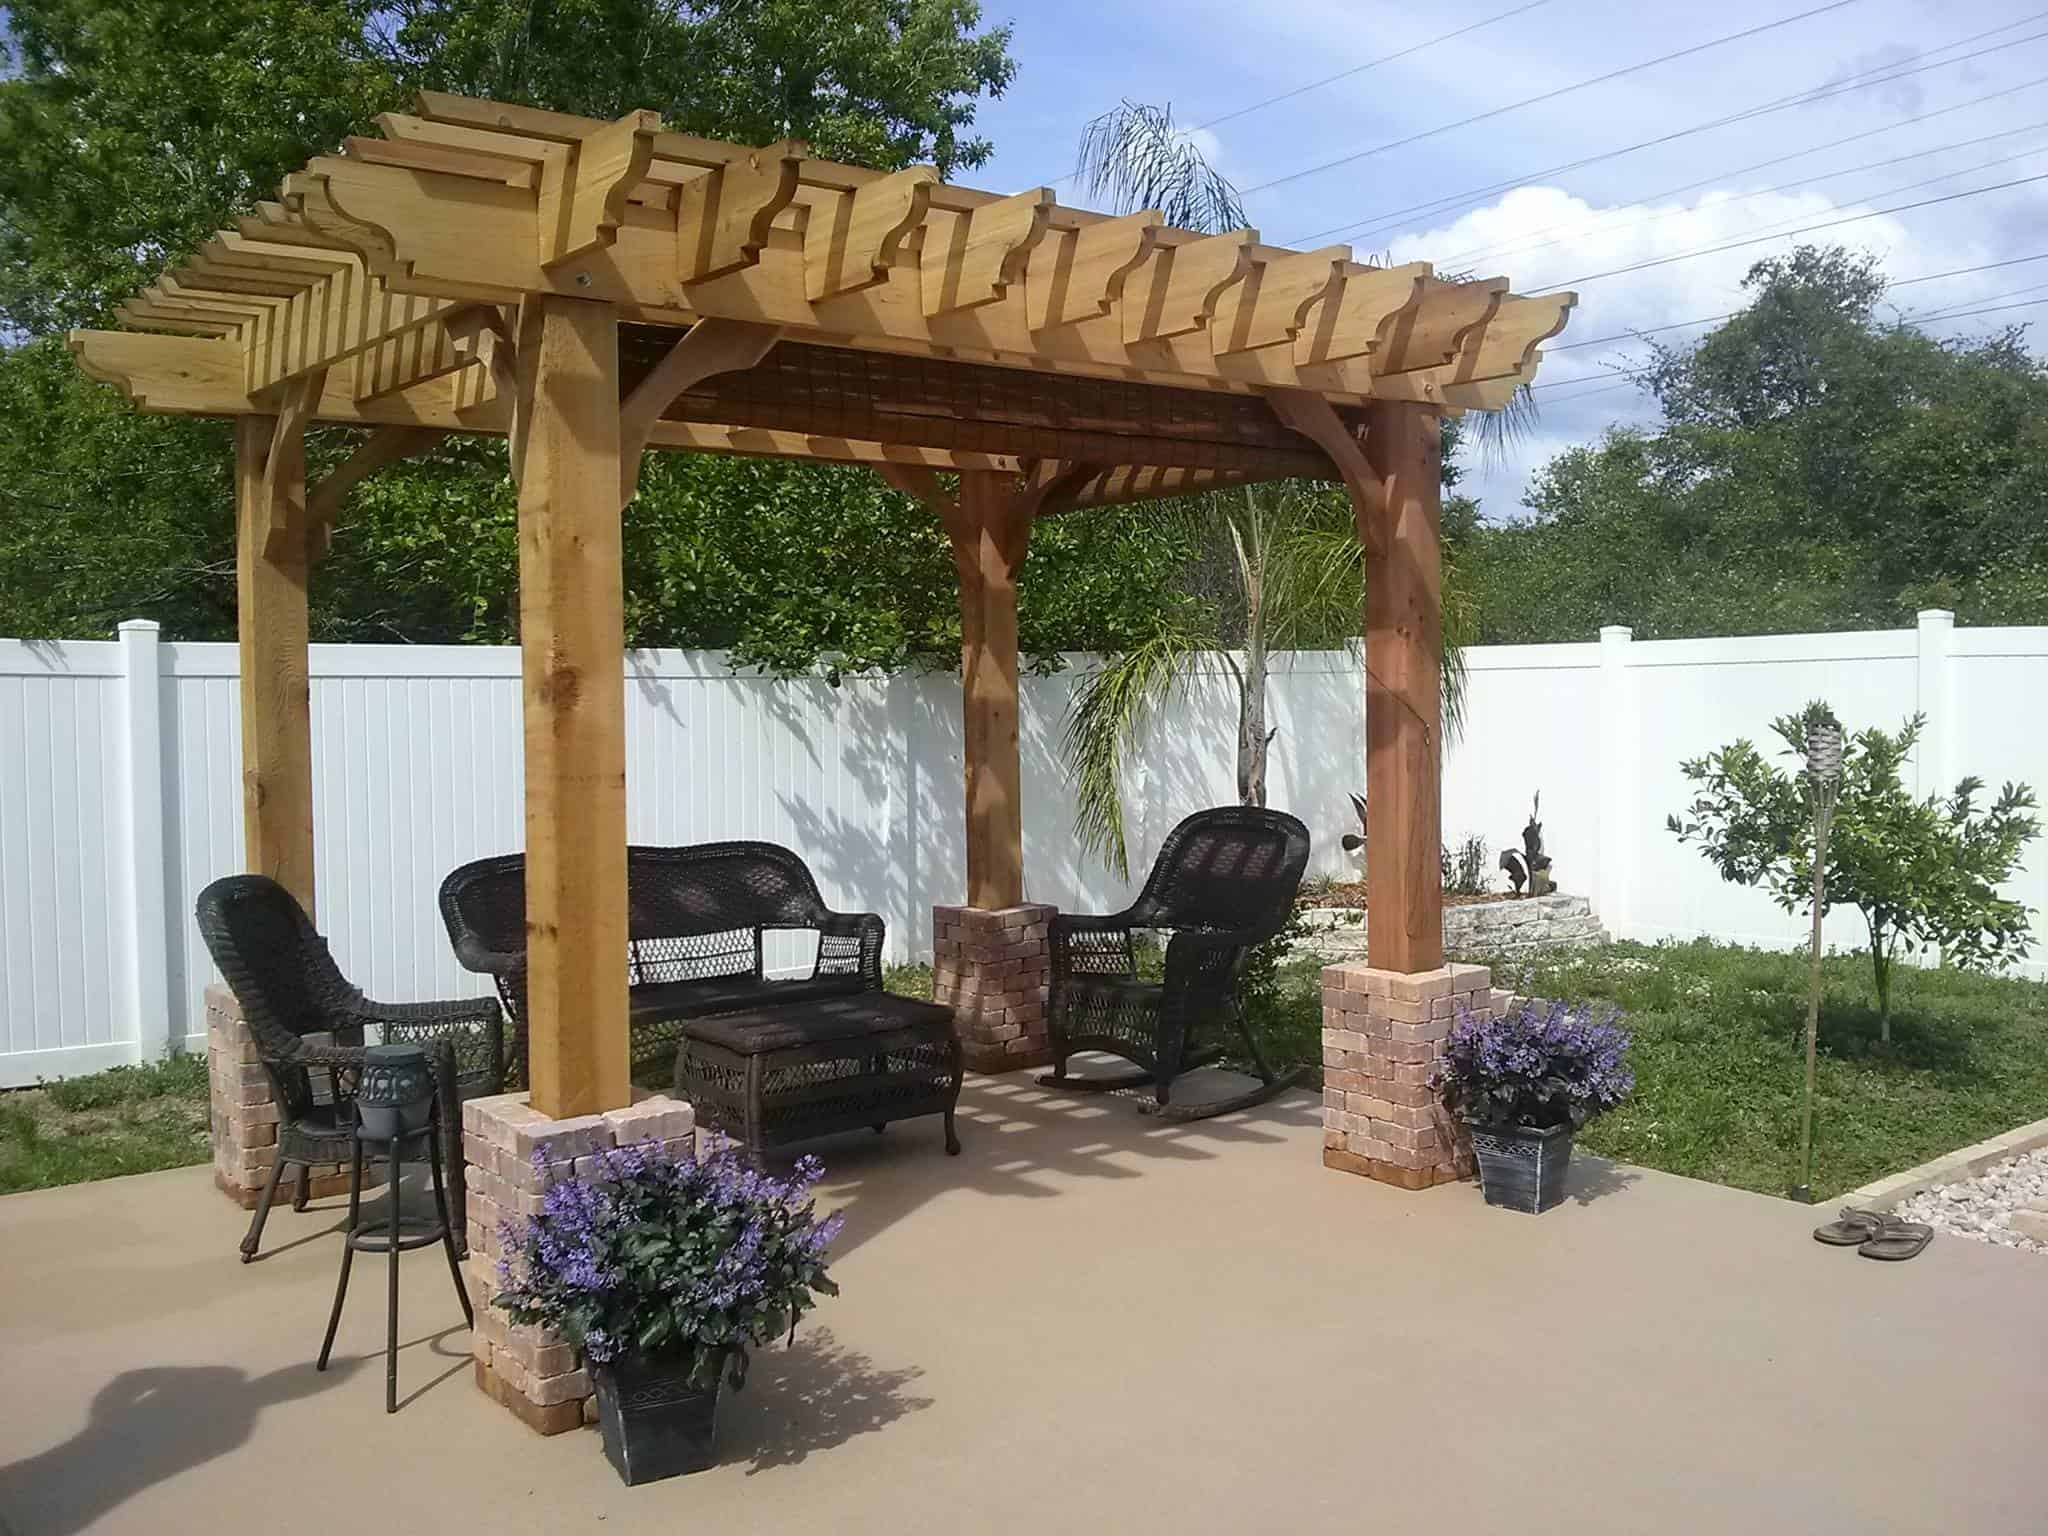 11x11 Pergola Kits Big Kahuna 11x11 Wood Pergola Kit